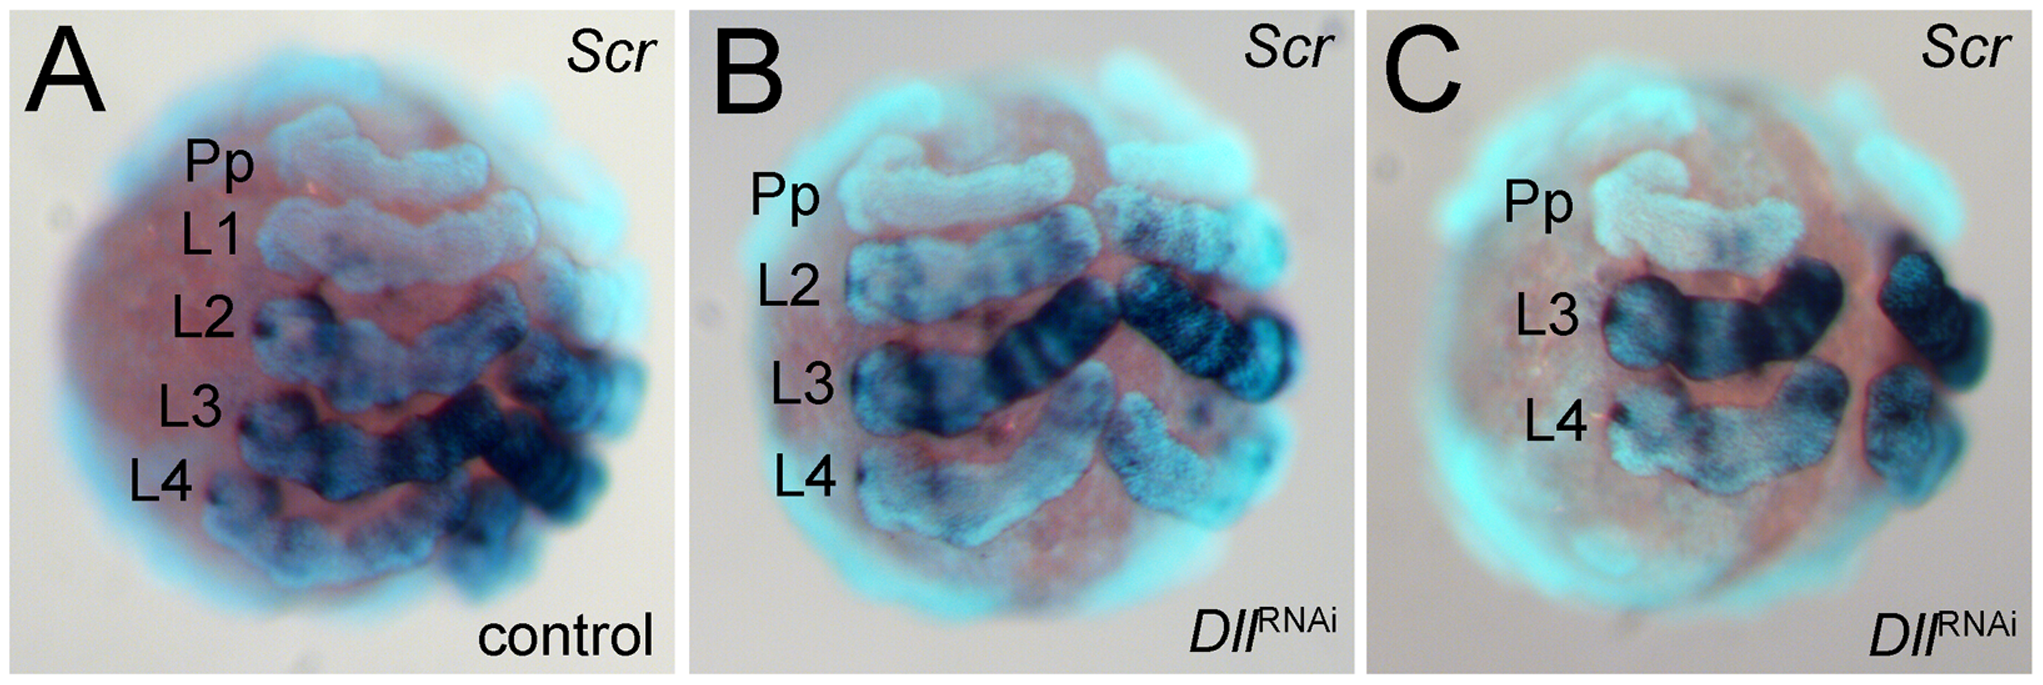 Expression of <i>Scr</i> in <i>At-Dll</i> RNAi embryos.